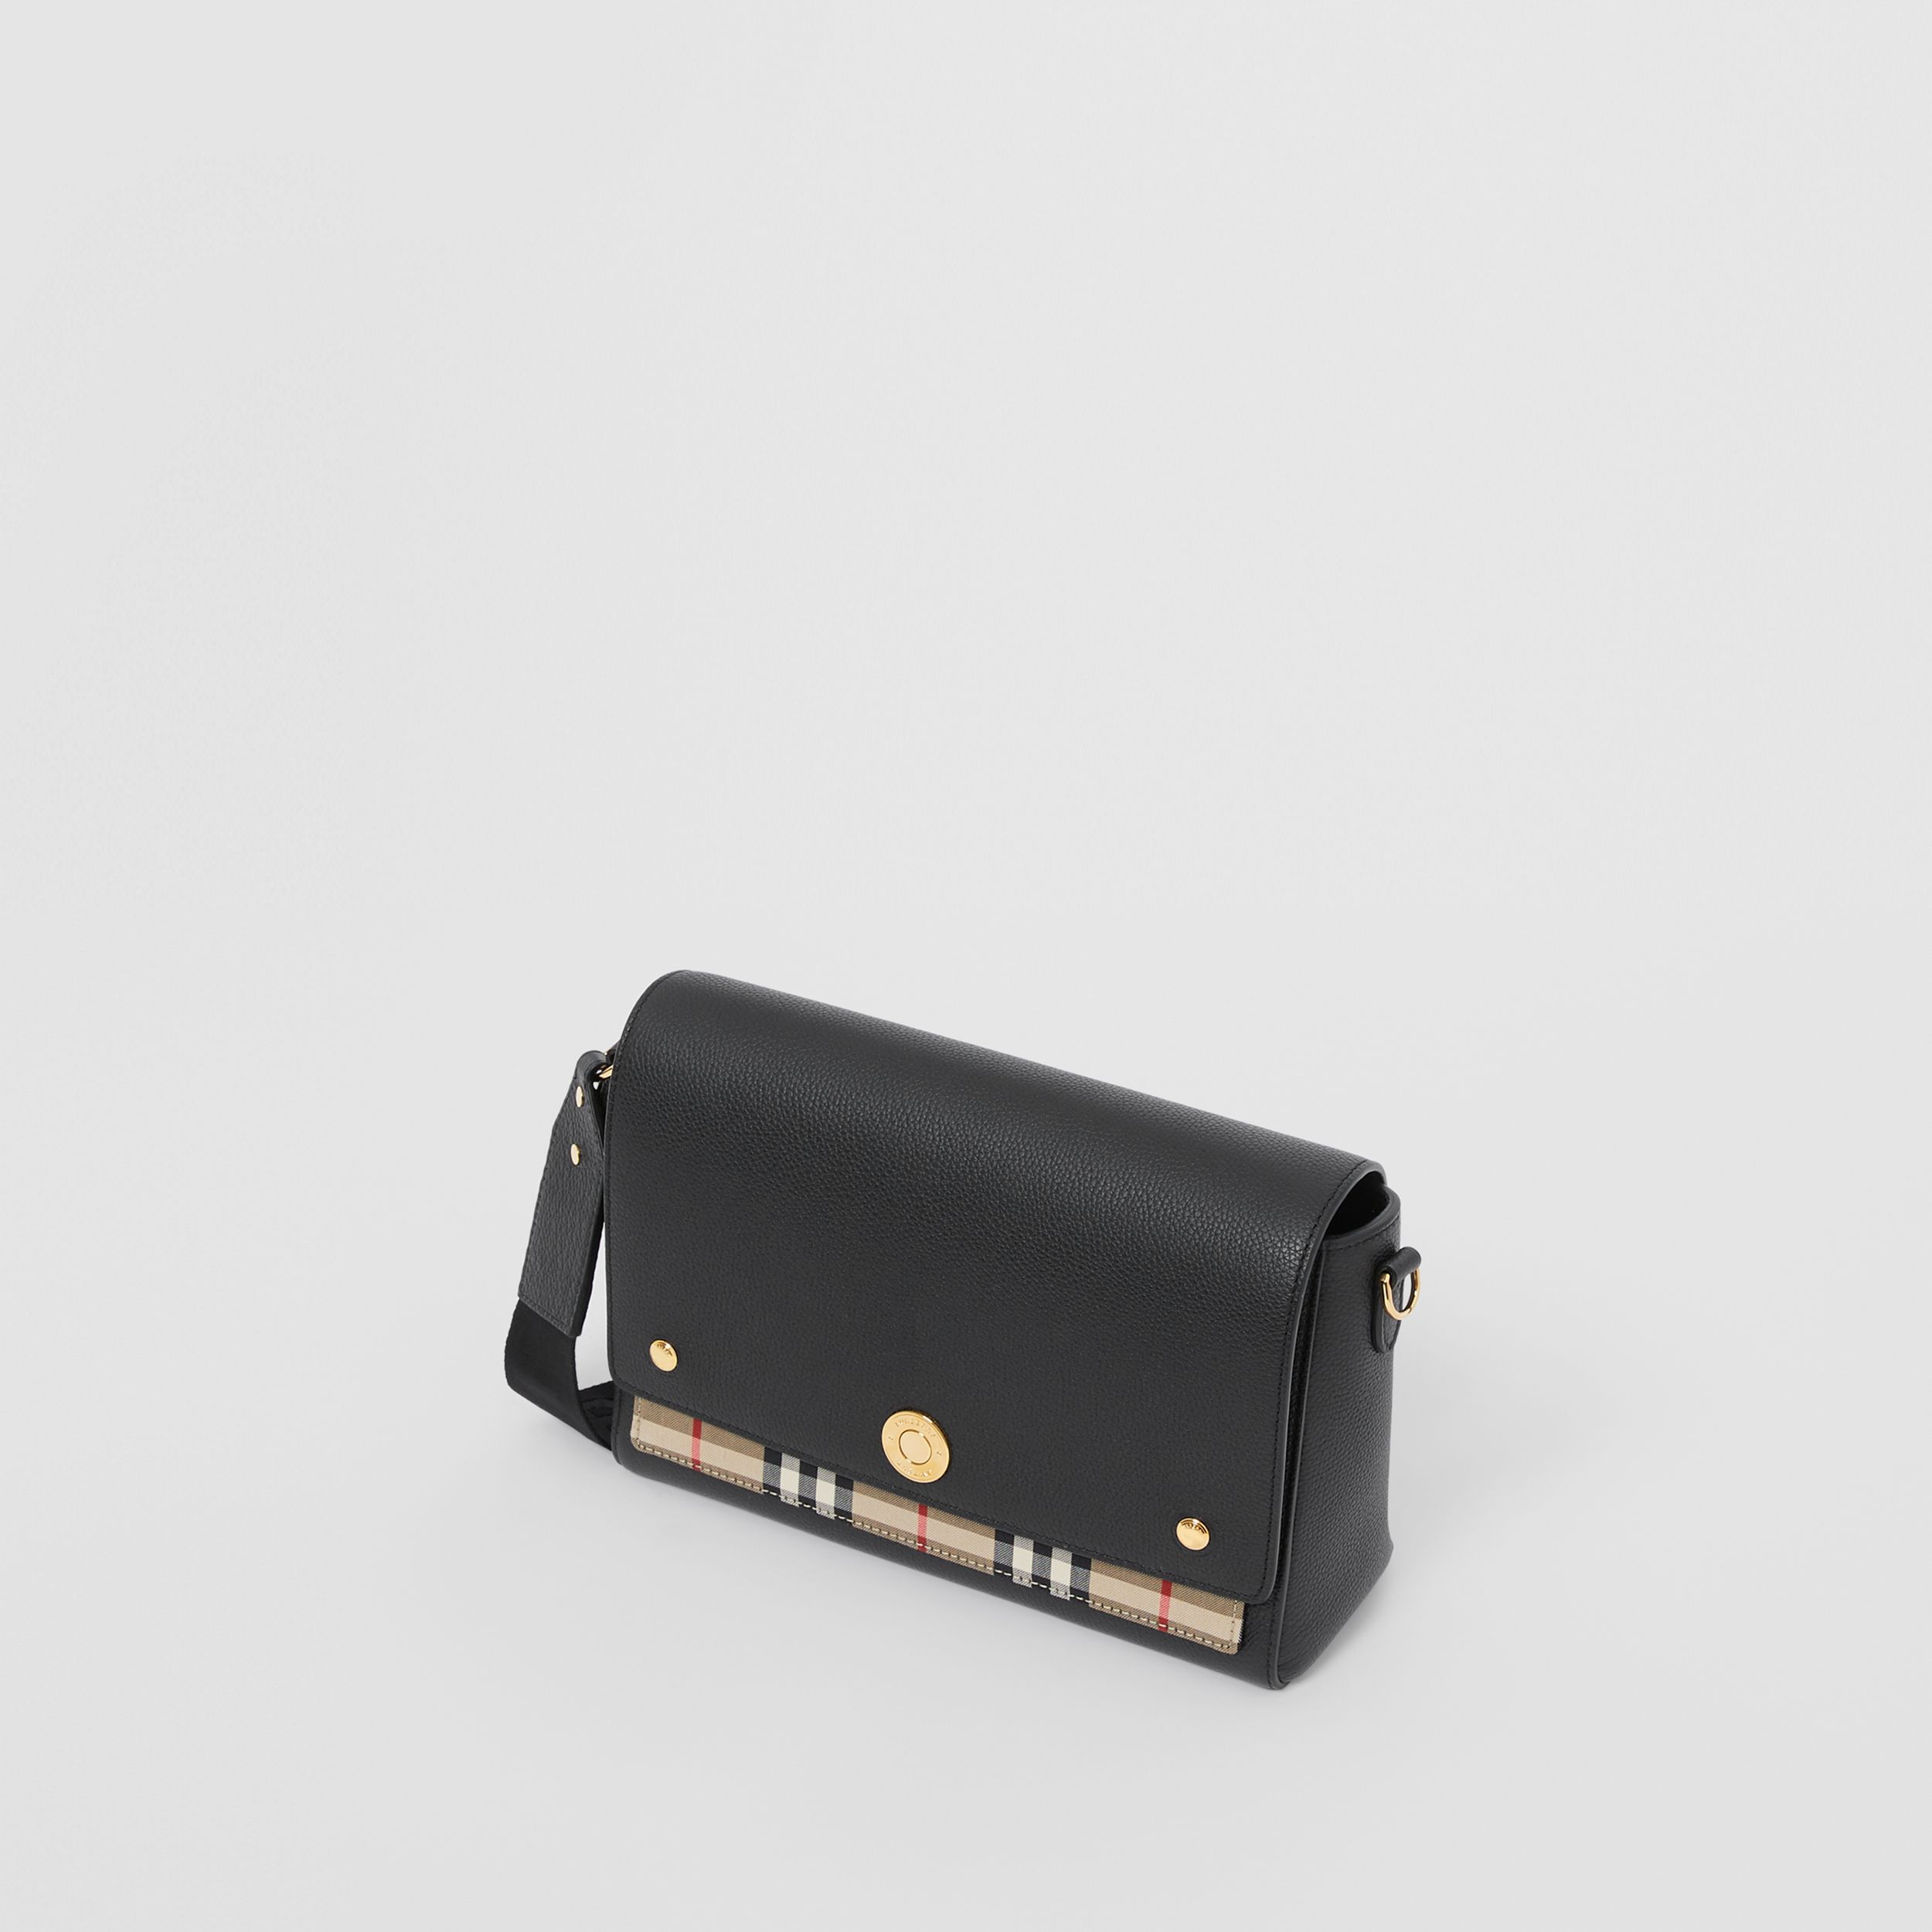 Leather and Vintage Check Note Crossbody Bag in Black - Women | Burberry Australia - 4